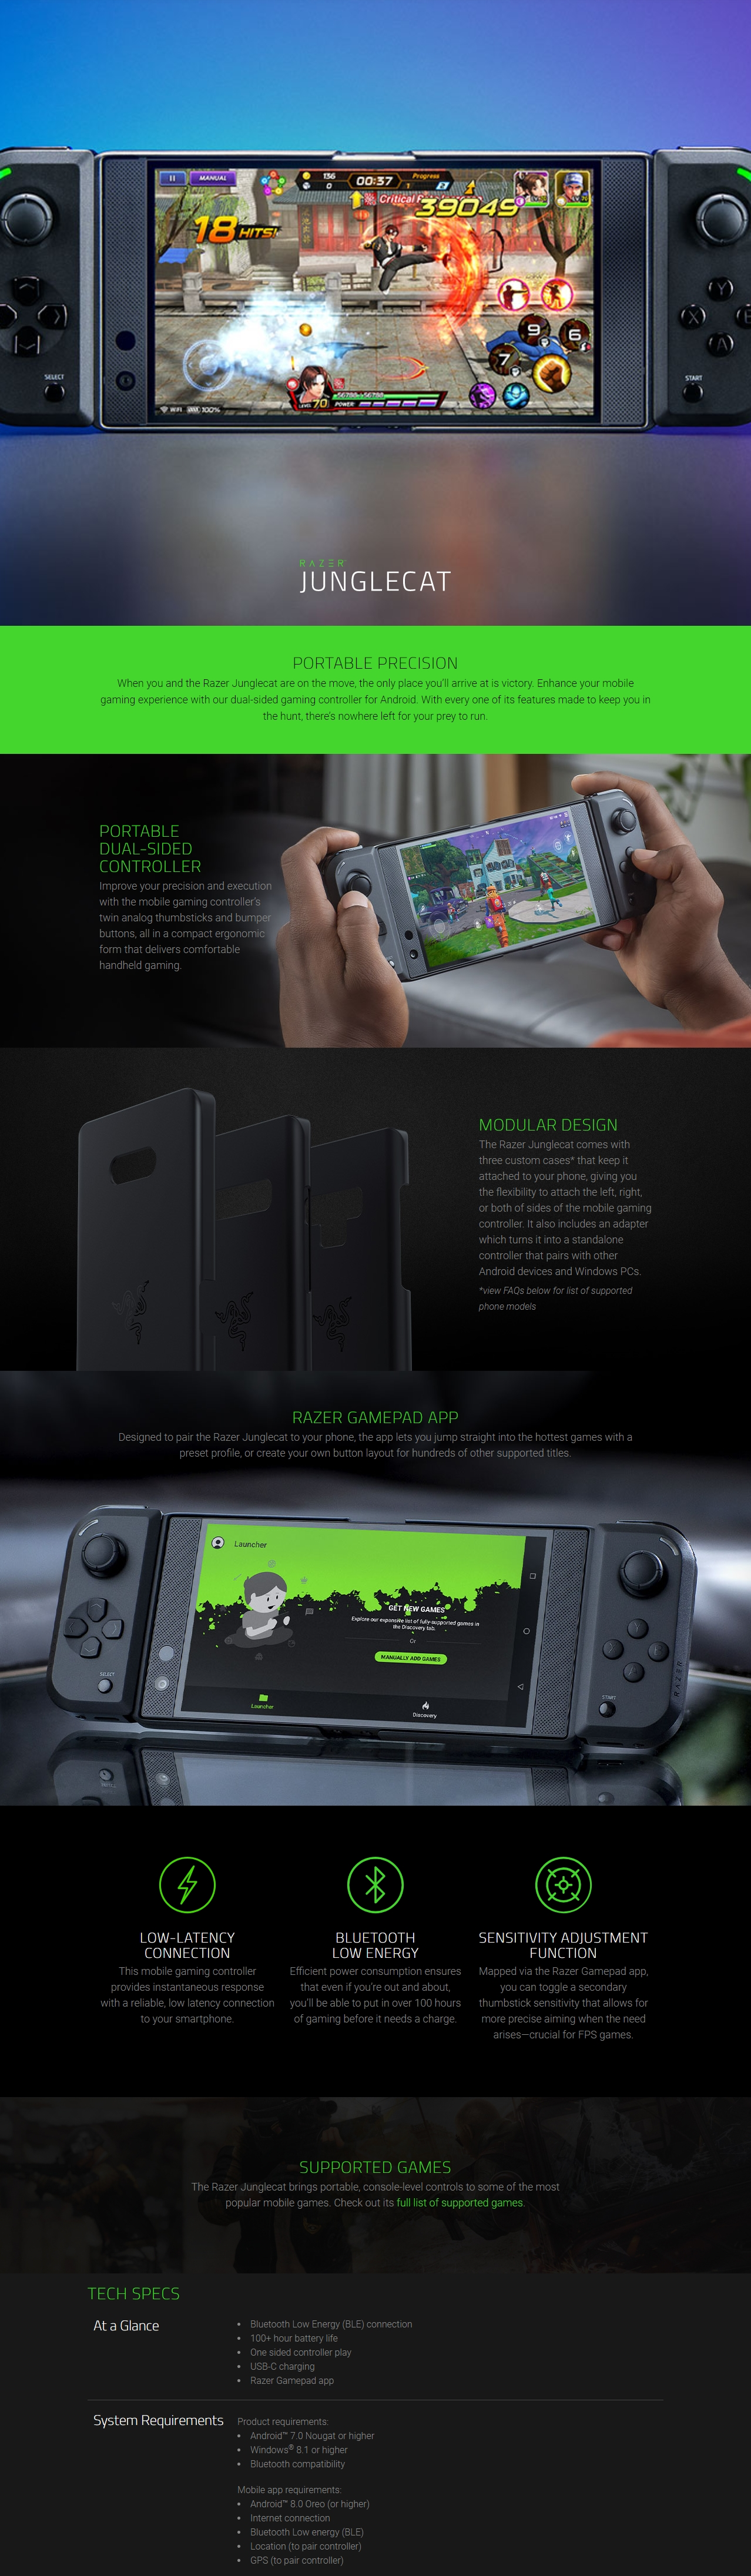 A large marketing image providing additional information about the product Razer JungleCat Android Compatible Gaming Controller - Additional alt info not provided